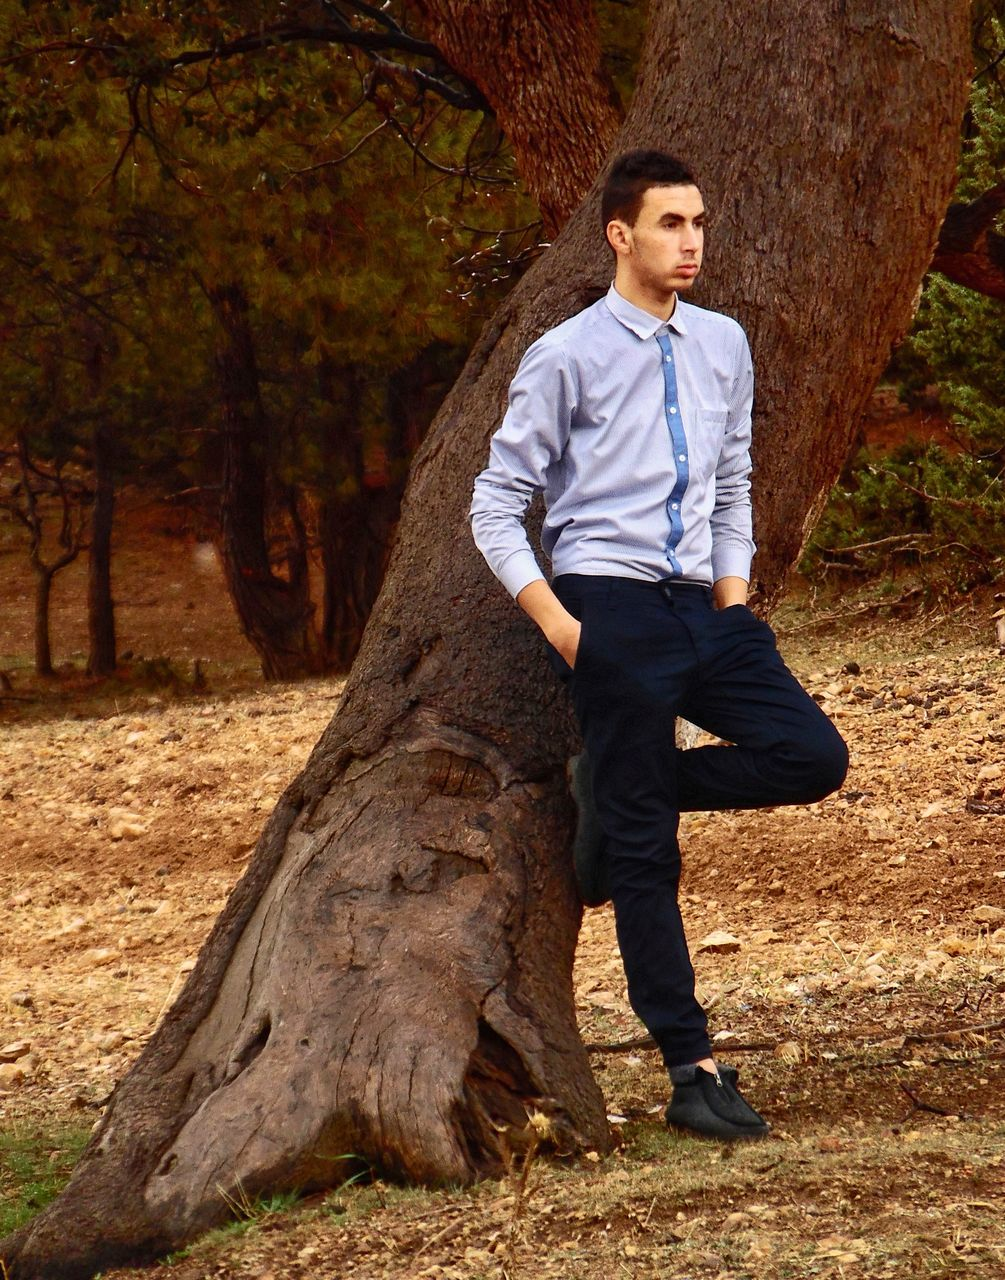 full length, tree, one person, real people, young adult, front view, casual clothing, young men, tree trunk, leisure activity, lifestyles, suit, park - man made space, forest, autumn, standing, day, outdoors, smiling, nature, adult, people, adults only